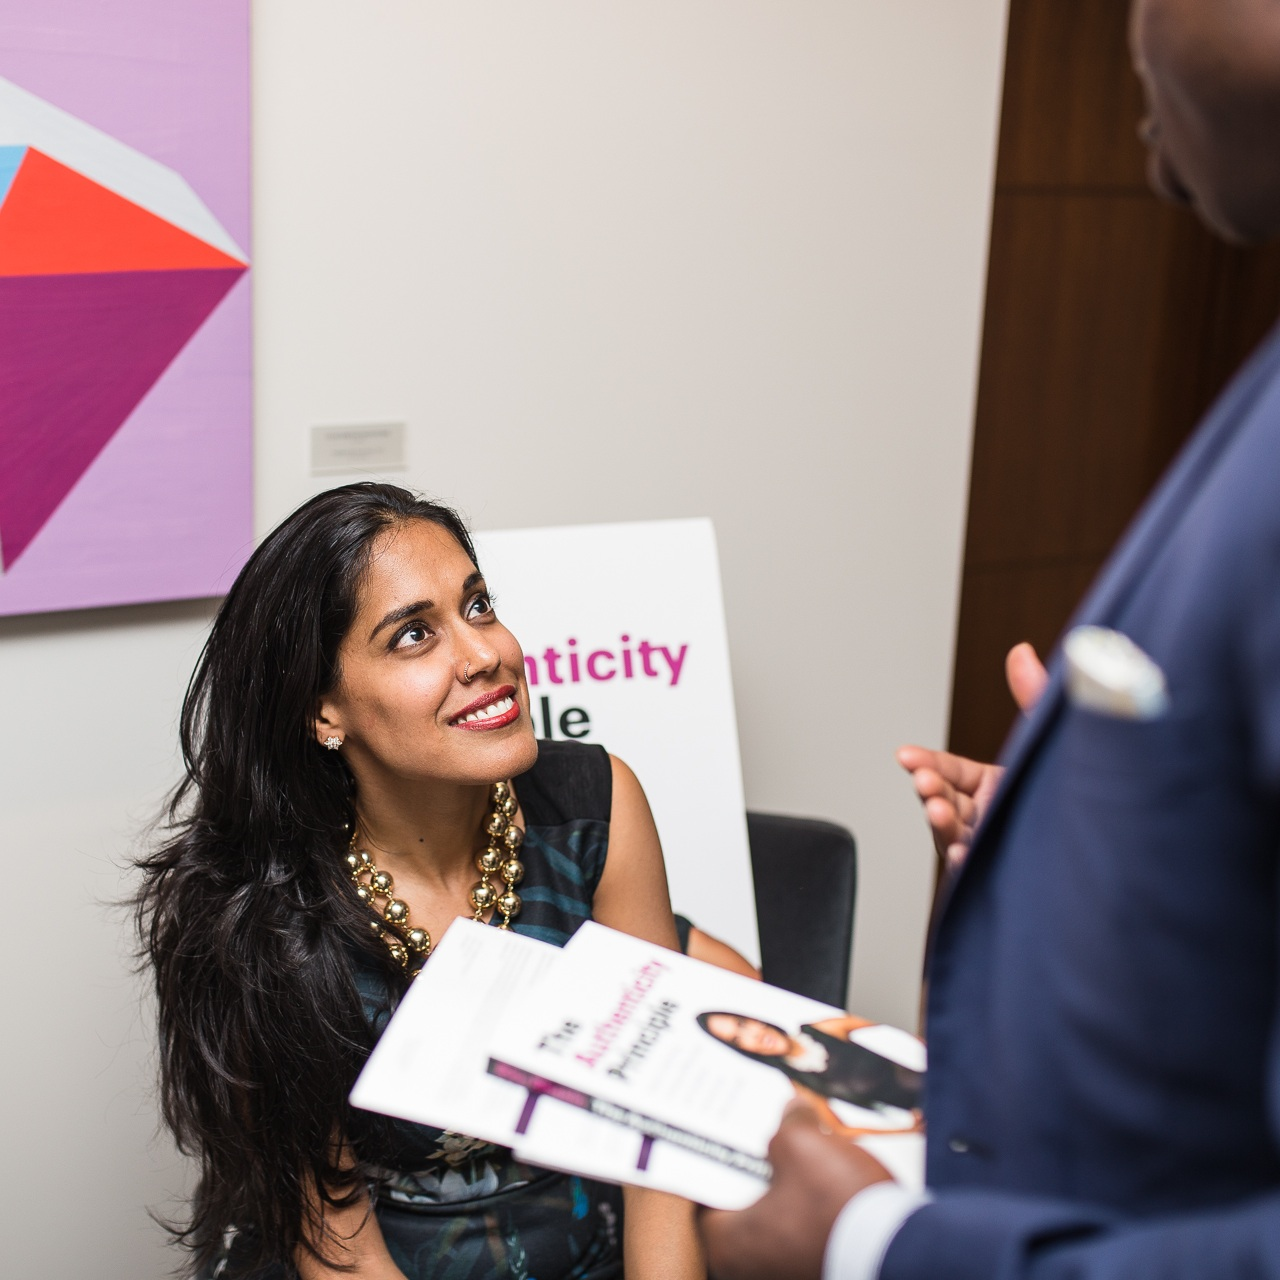 Ritu Bhasin is seated while looking up smiling at a suited man who is getting his booked signed